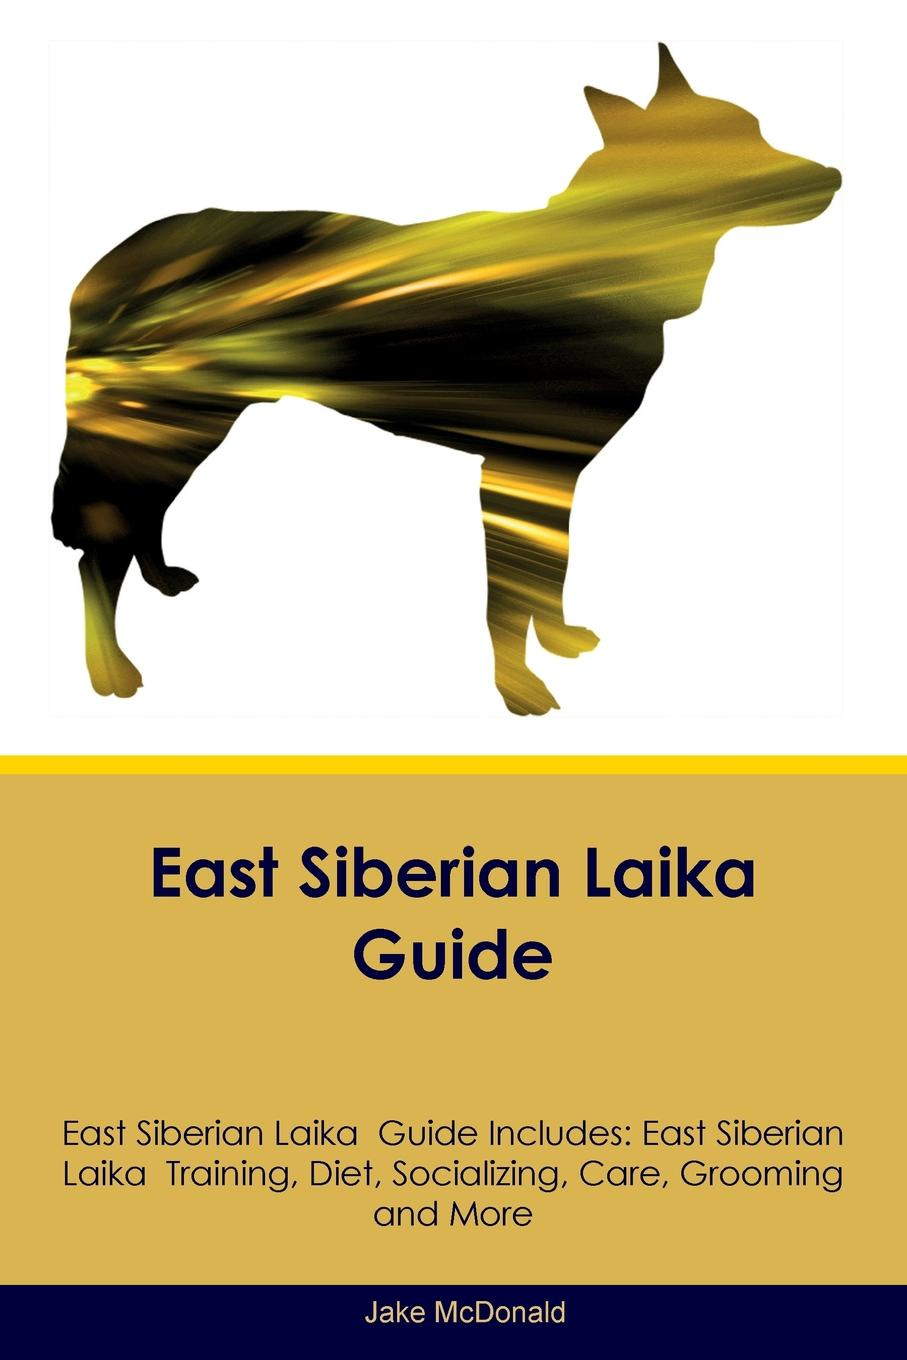 Jake McDonald East Siberian Laika Guide East Siberian Laika Guide Includes. East Siberian Laika Training, Diet, Socializing, Care, Grooming, Breeding and More guide to the great siberian railway